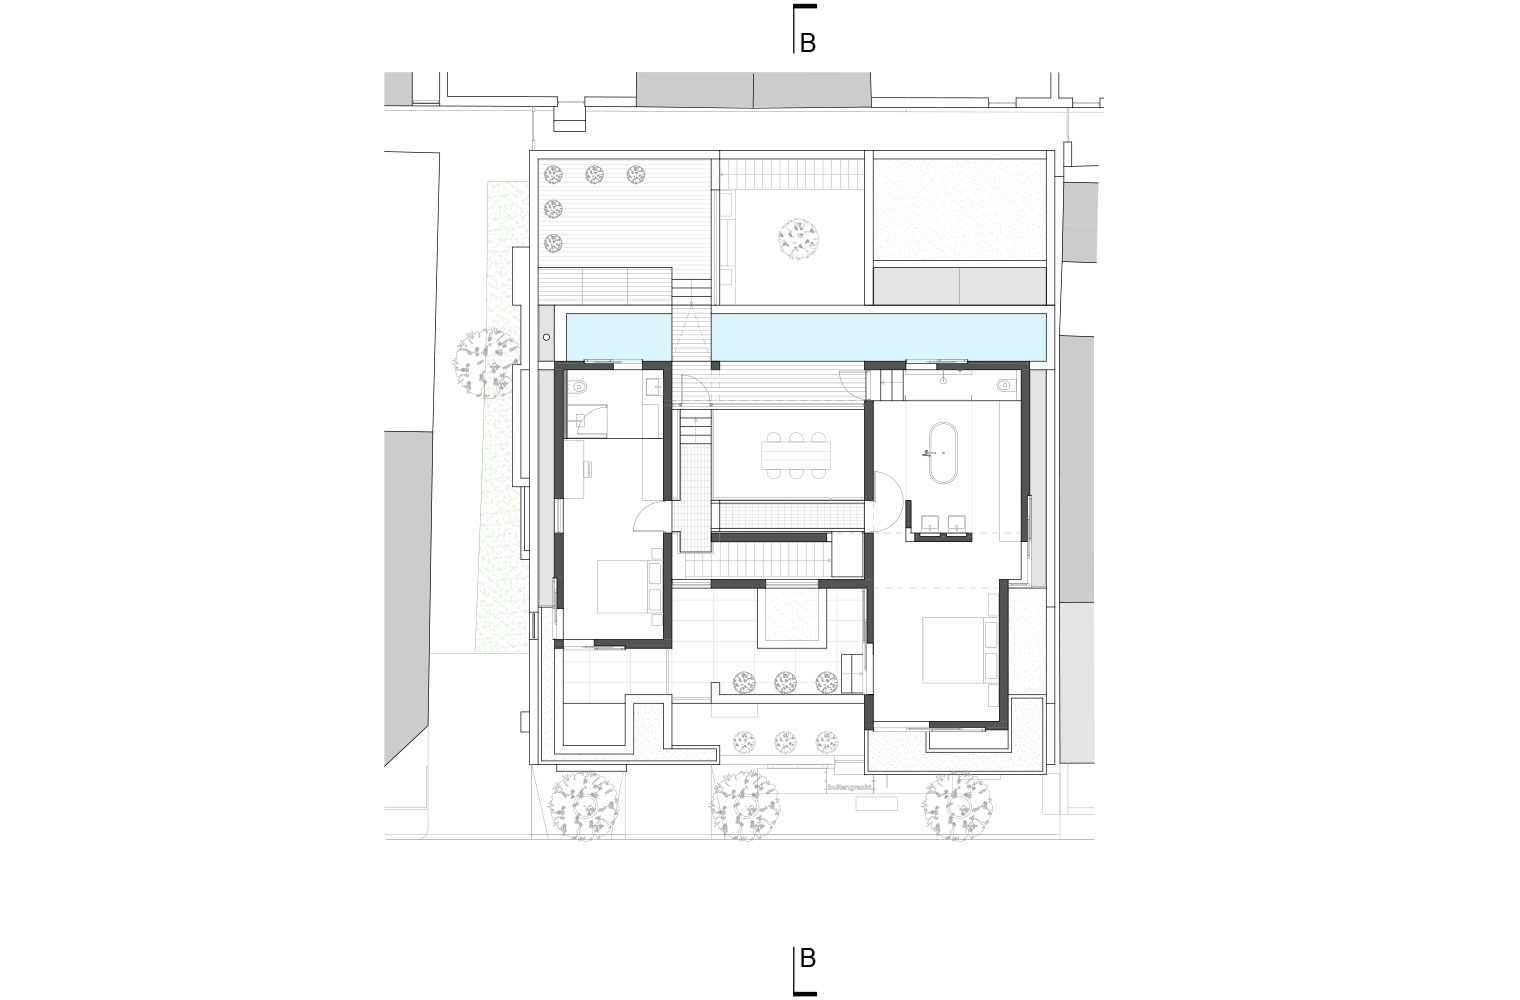 236-Buitengracht-Fourth Floor Plan